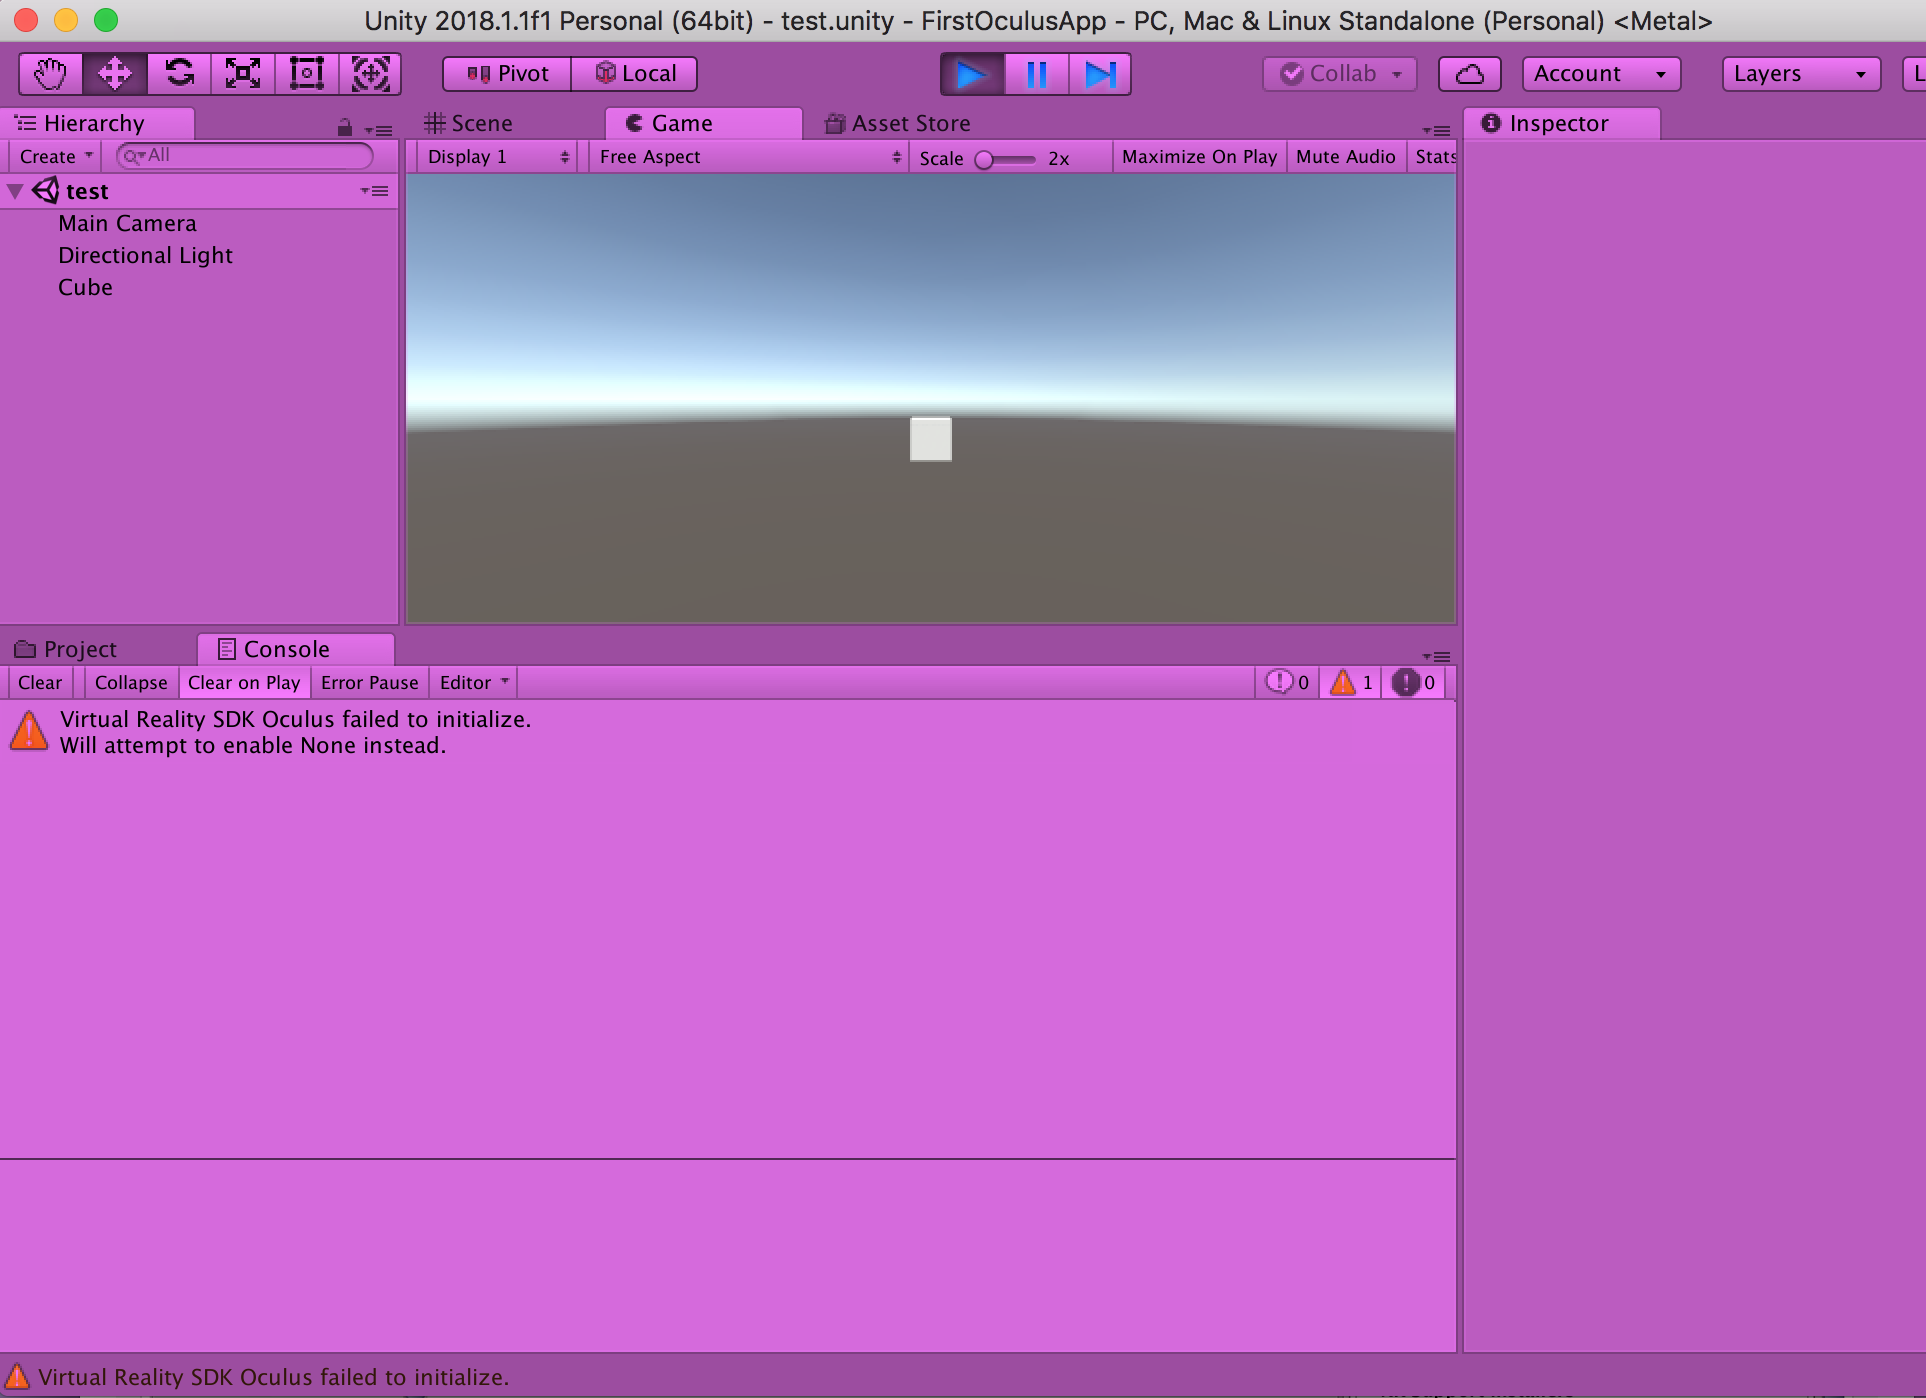 Can I develop an Oculus Rift/Unity app on a Mac (but test on